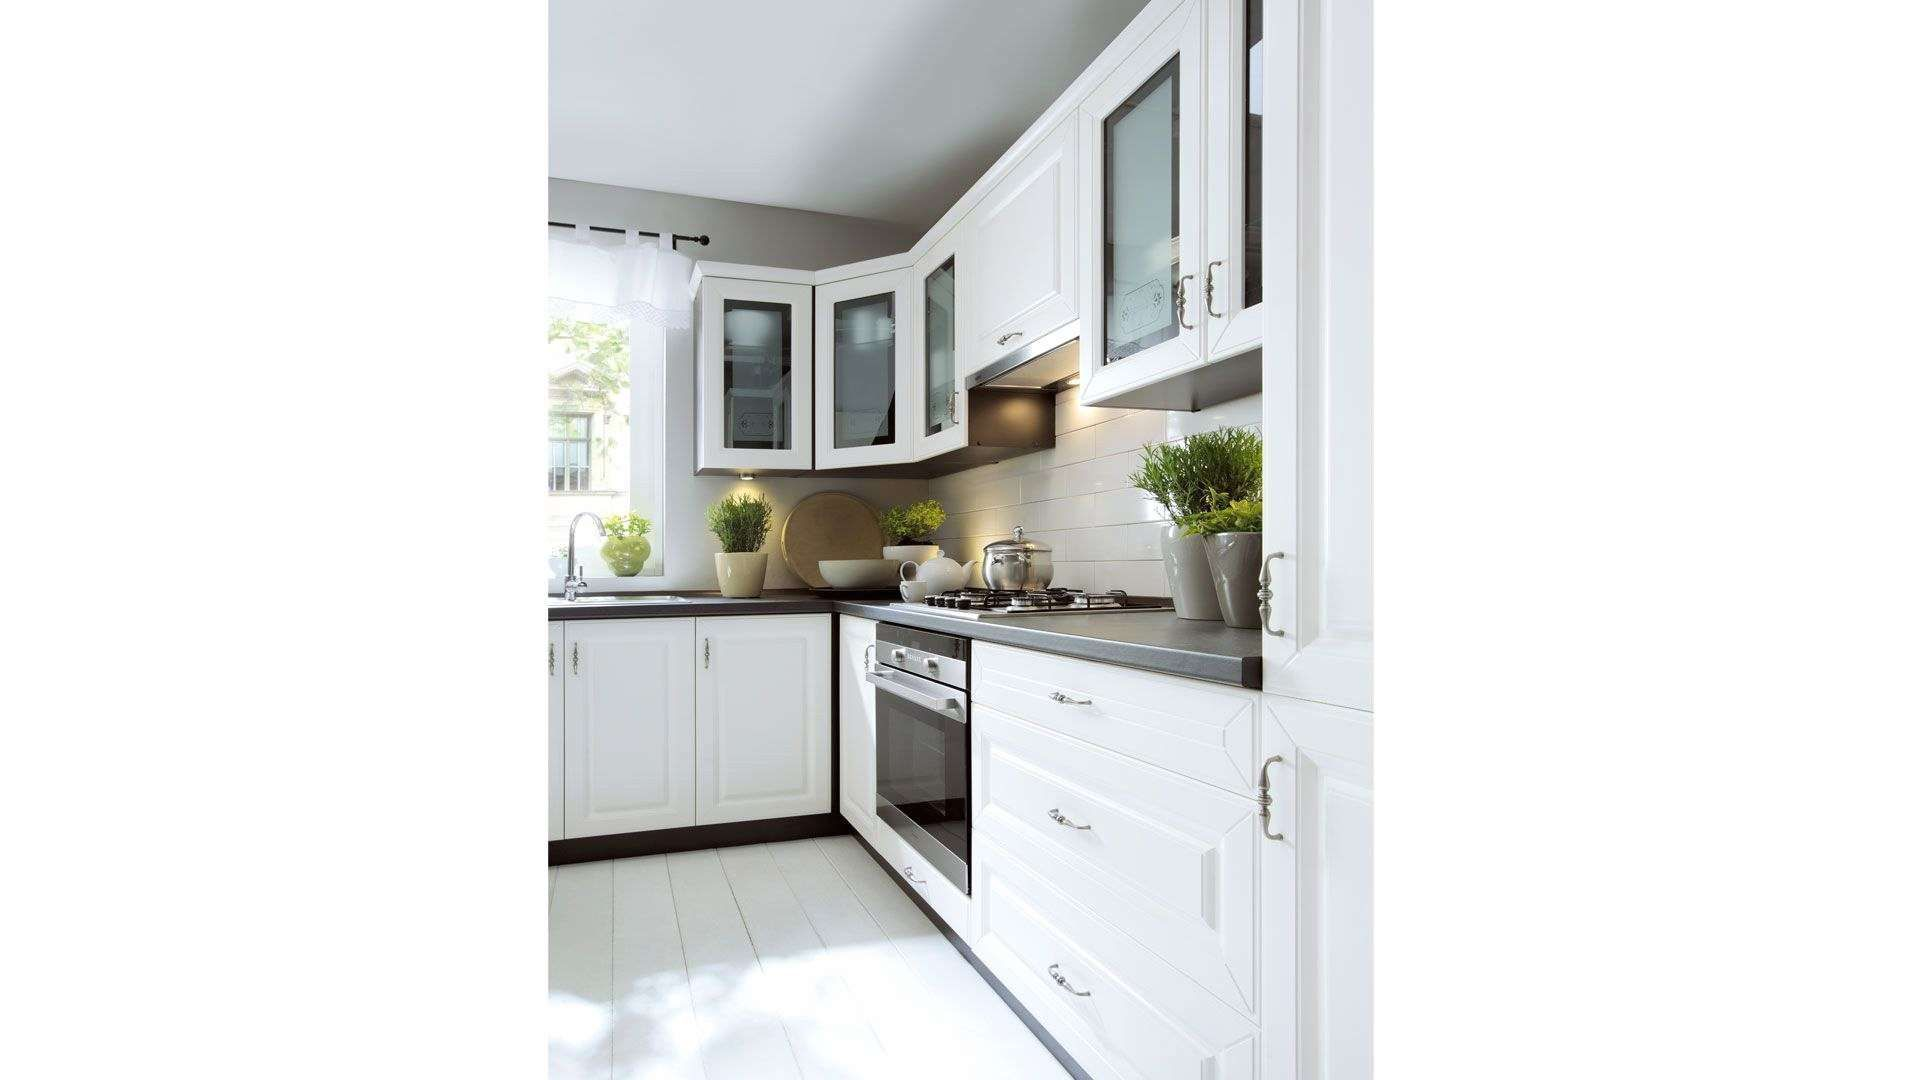 Exquisite Kitchen Cabinet Locks Swing Kitchen